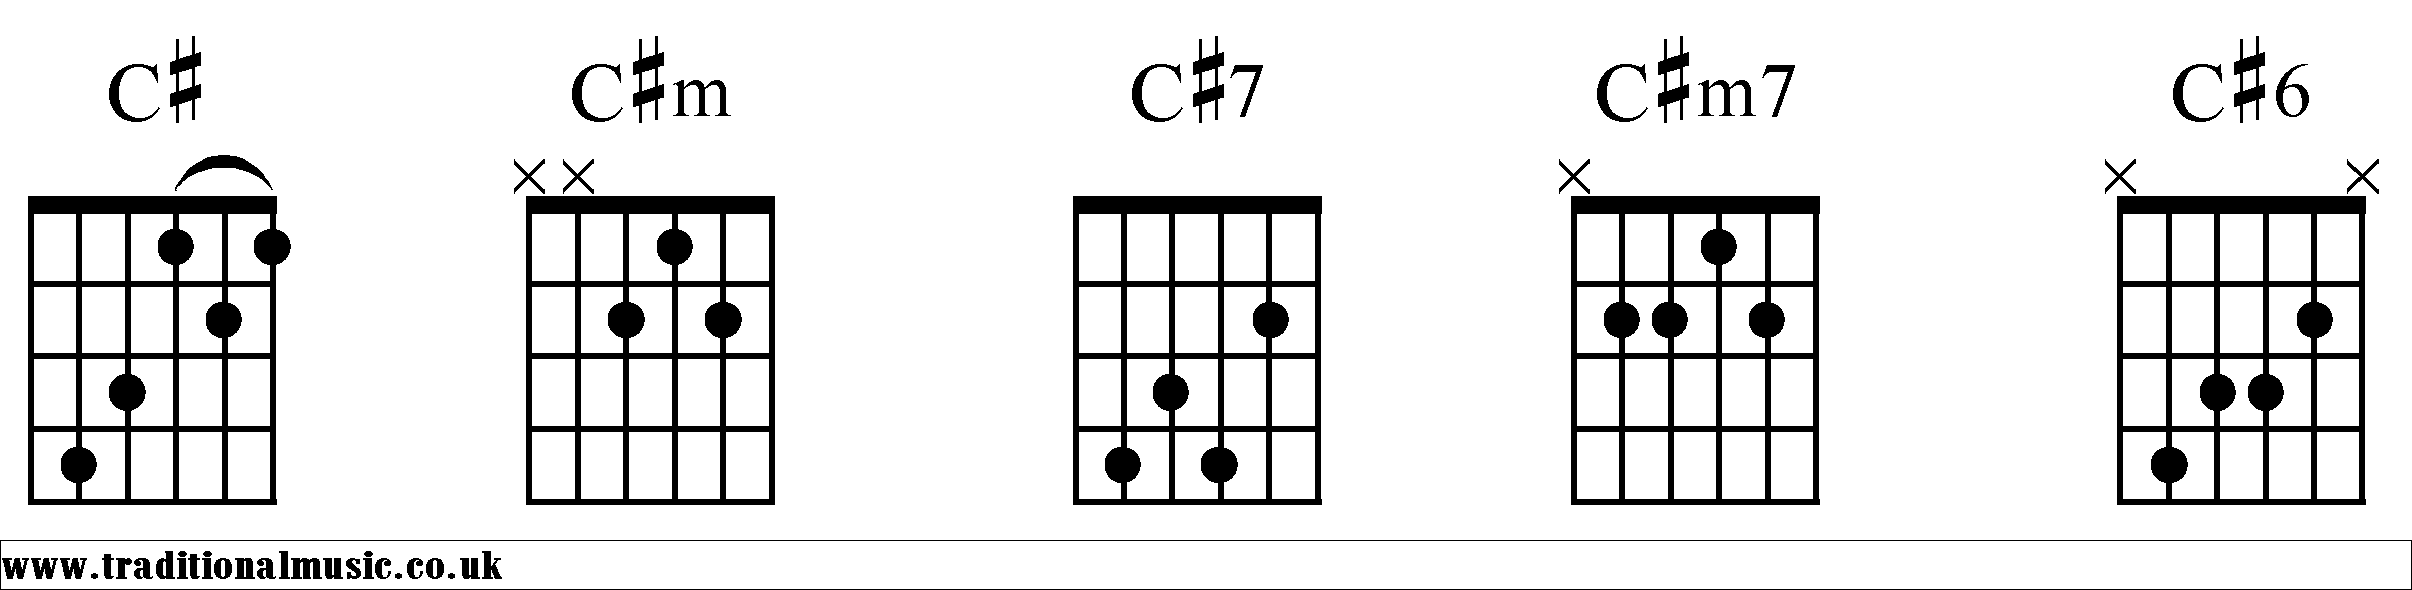 Chord charts for Guitar C#